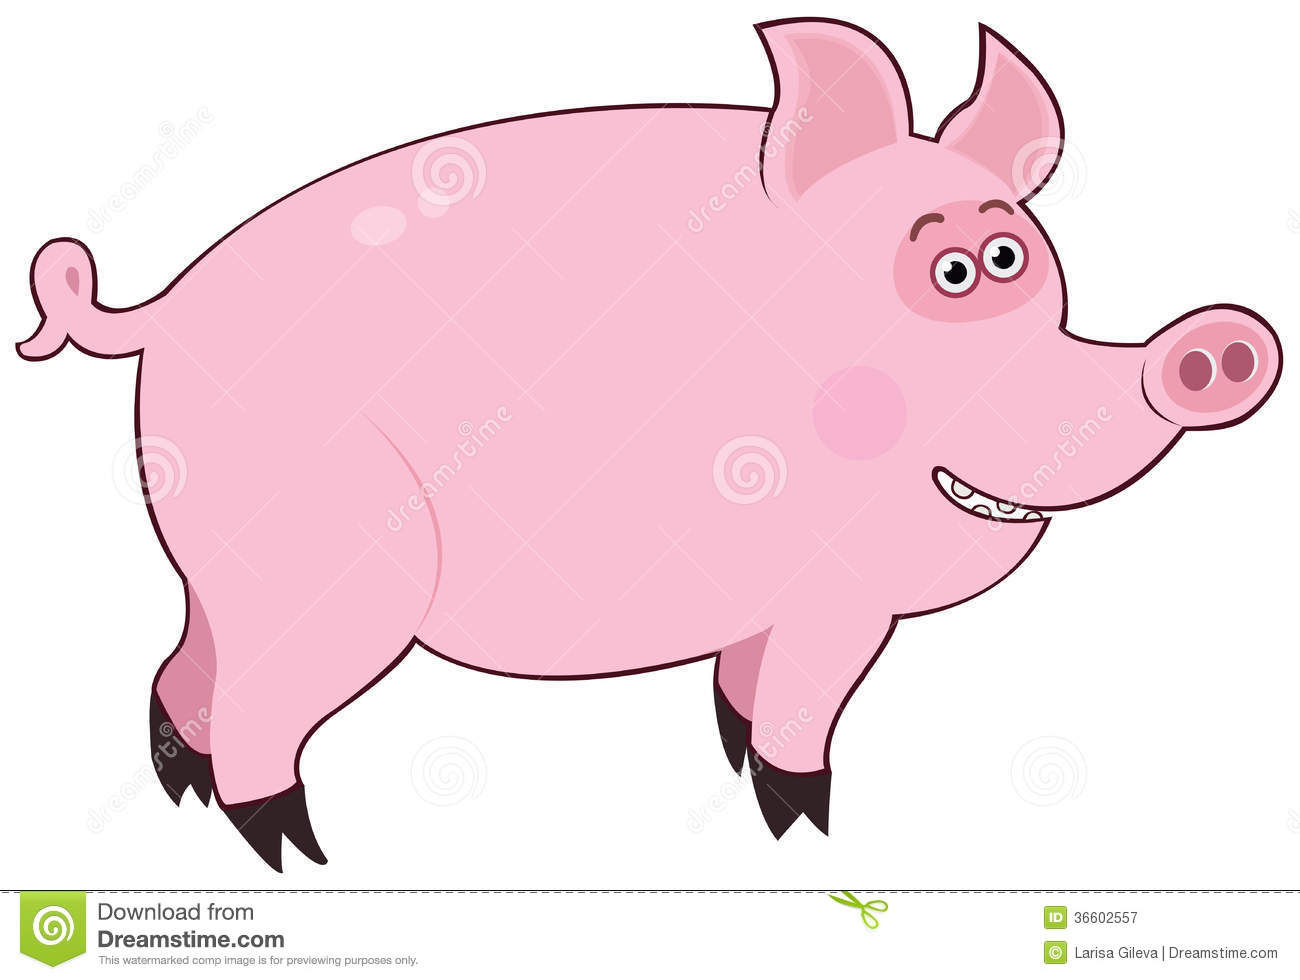 Pig Feet Stock Illustrations 177 Pig Feet Stock Illustrations Vectors Clipart Dreamstime